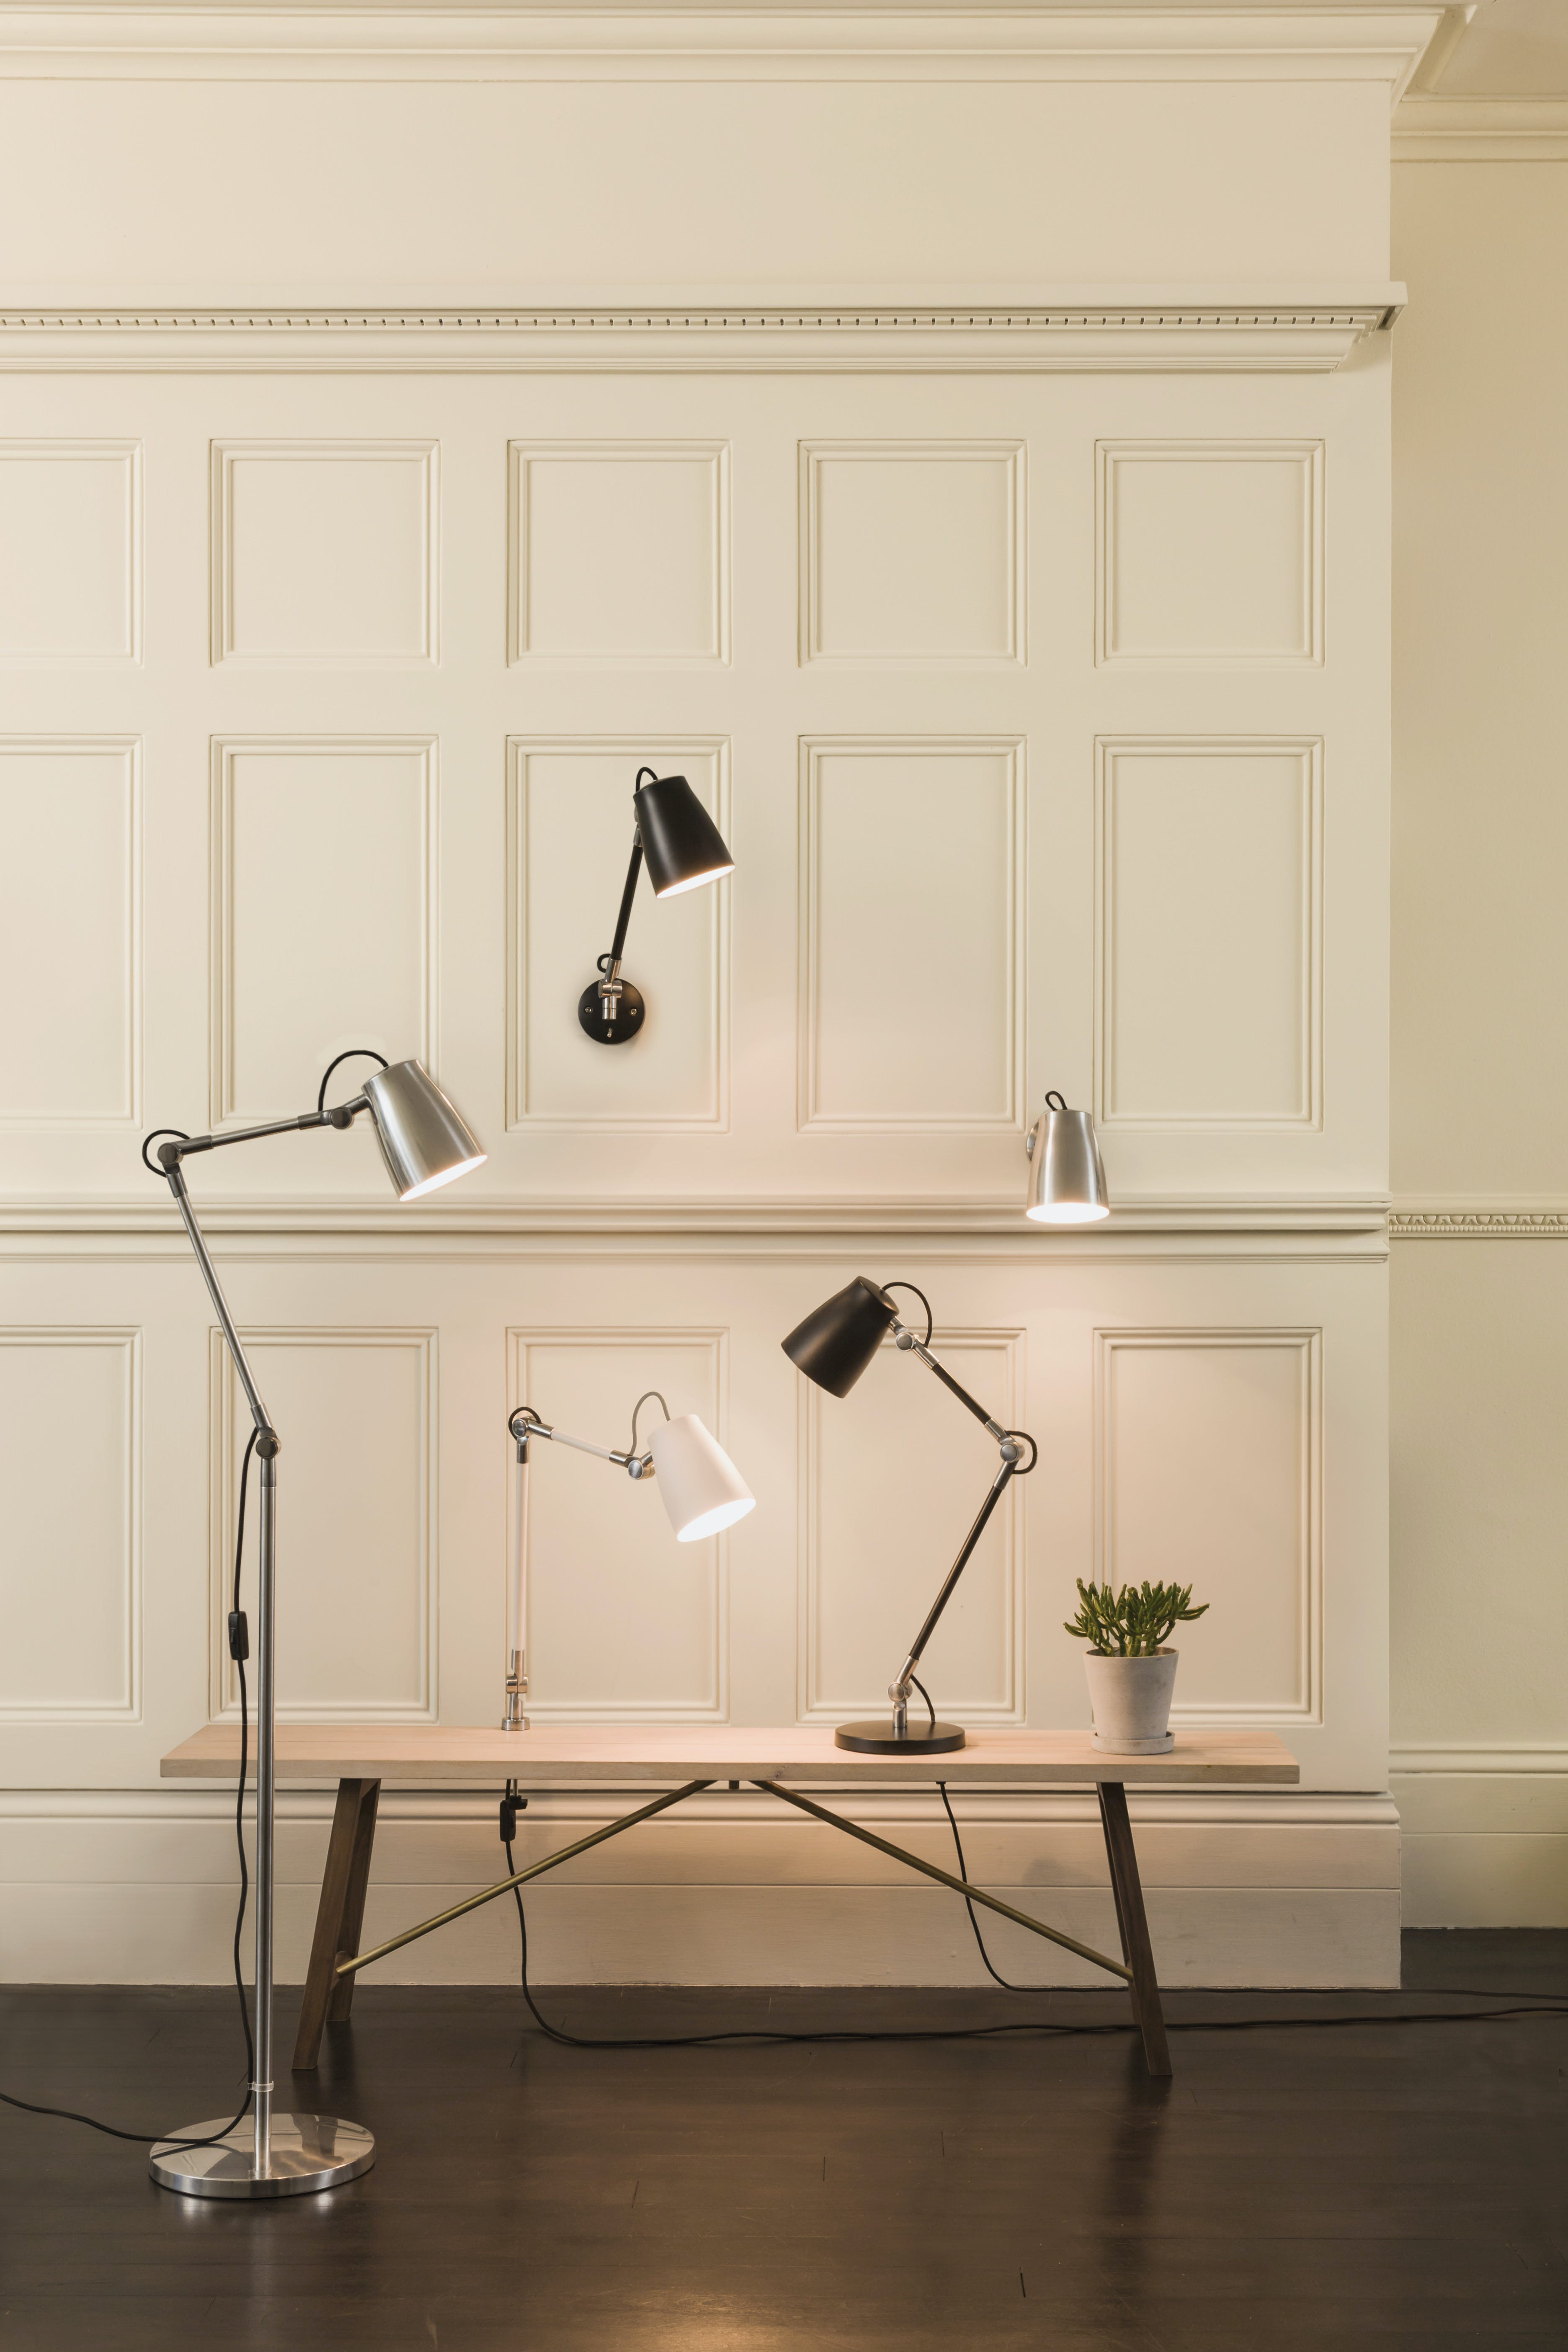 Five black and silver Astro lamps in bench